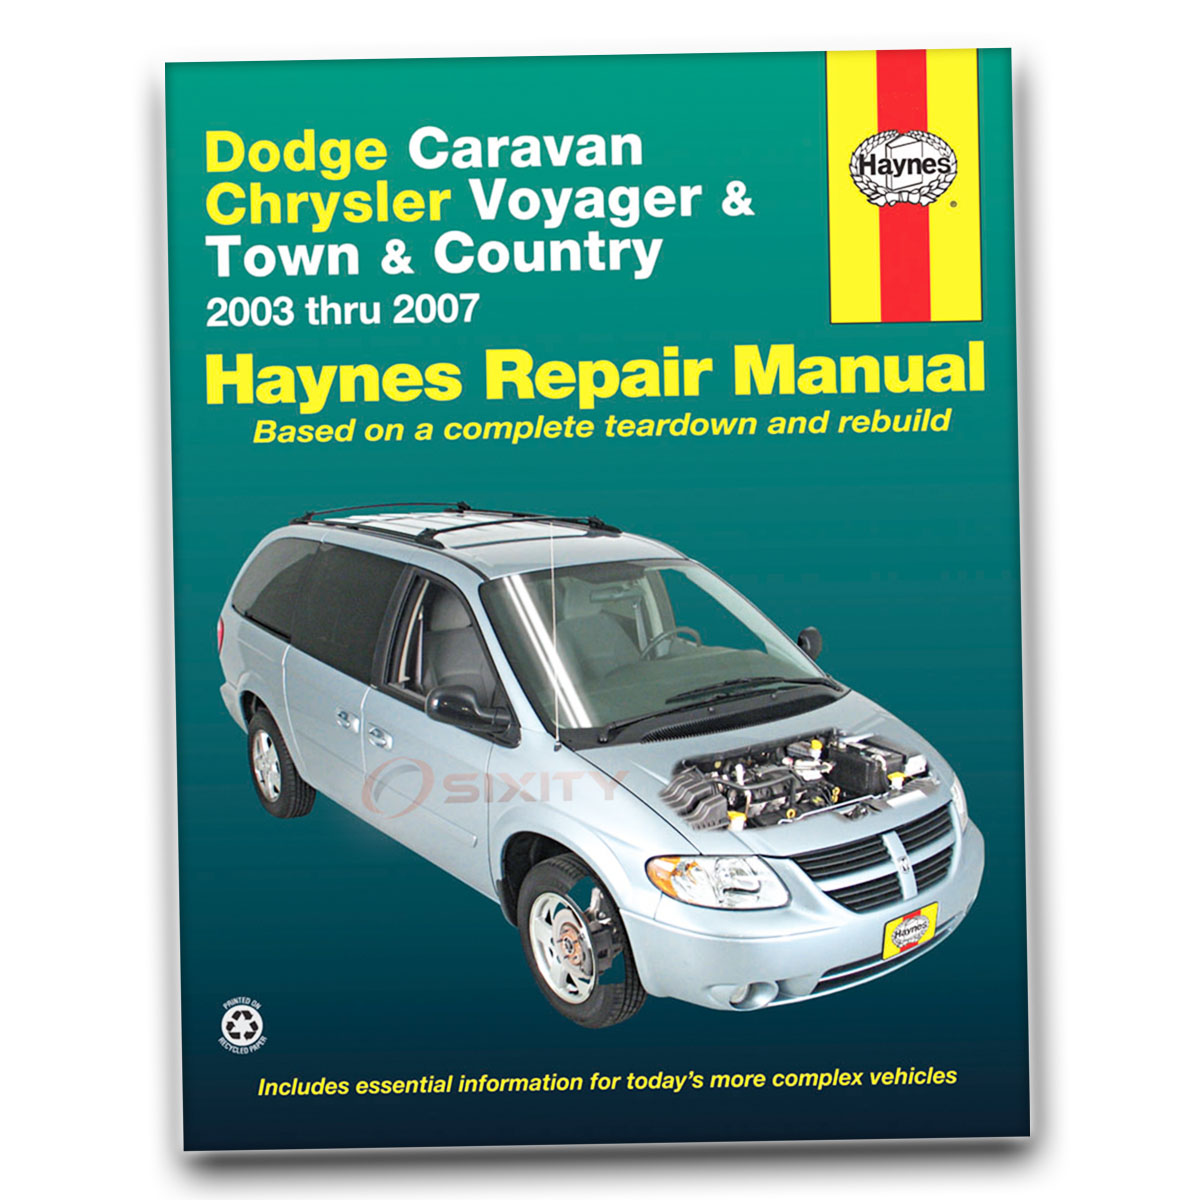 Haynes Repair Manual 30013 for Dodge Caravan Chrysler Voyager Town Country  tm